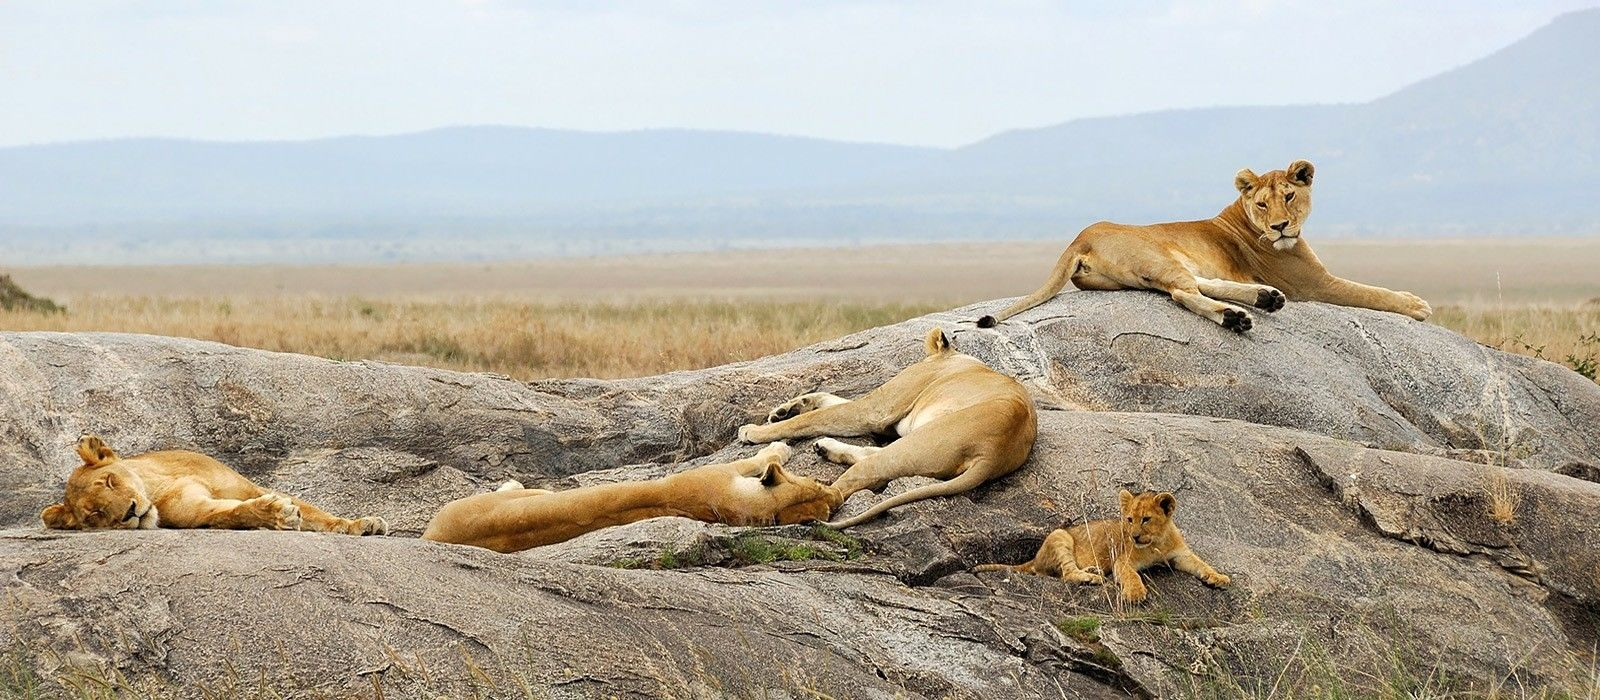 Lakeside Luxury, Wilderness and Wildlife in Tanzania Tour Trip 2